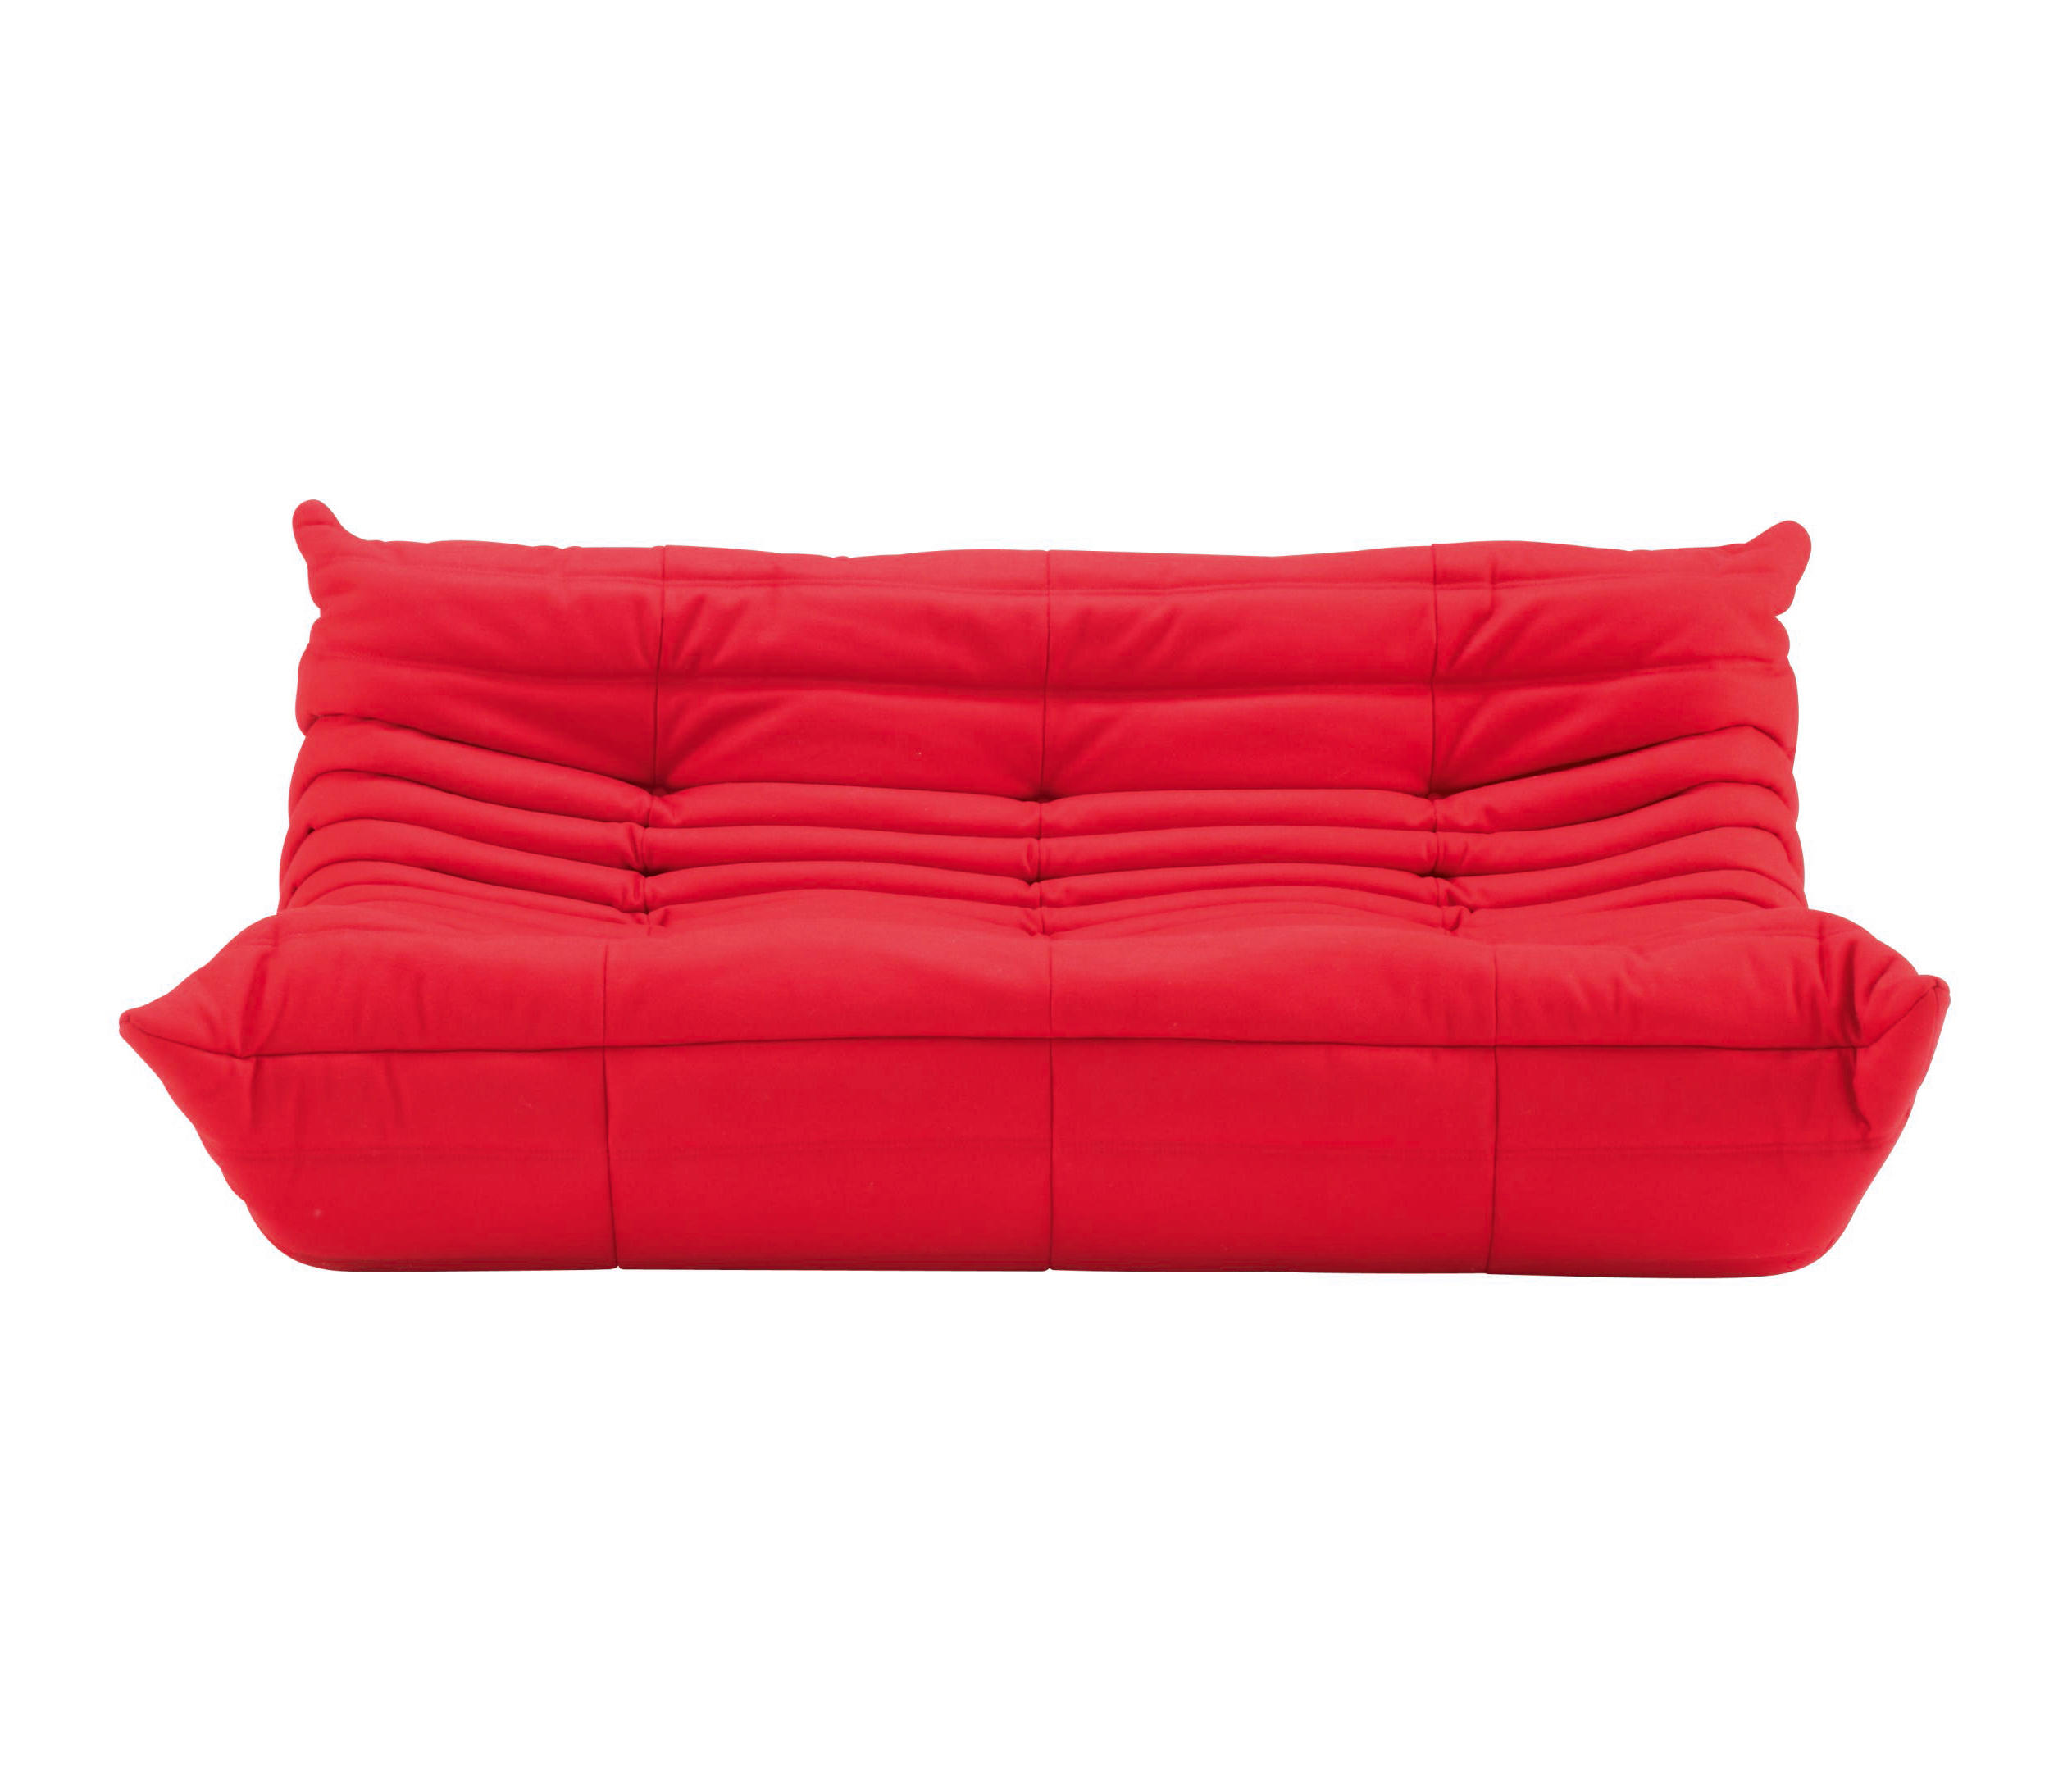 Togo Sofa Togo Large Settee Without Arms Sofas From Ligne Roset